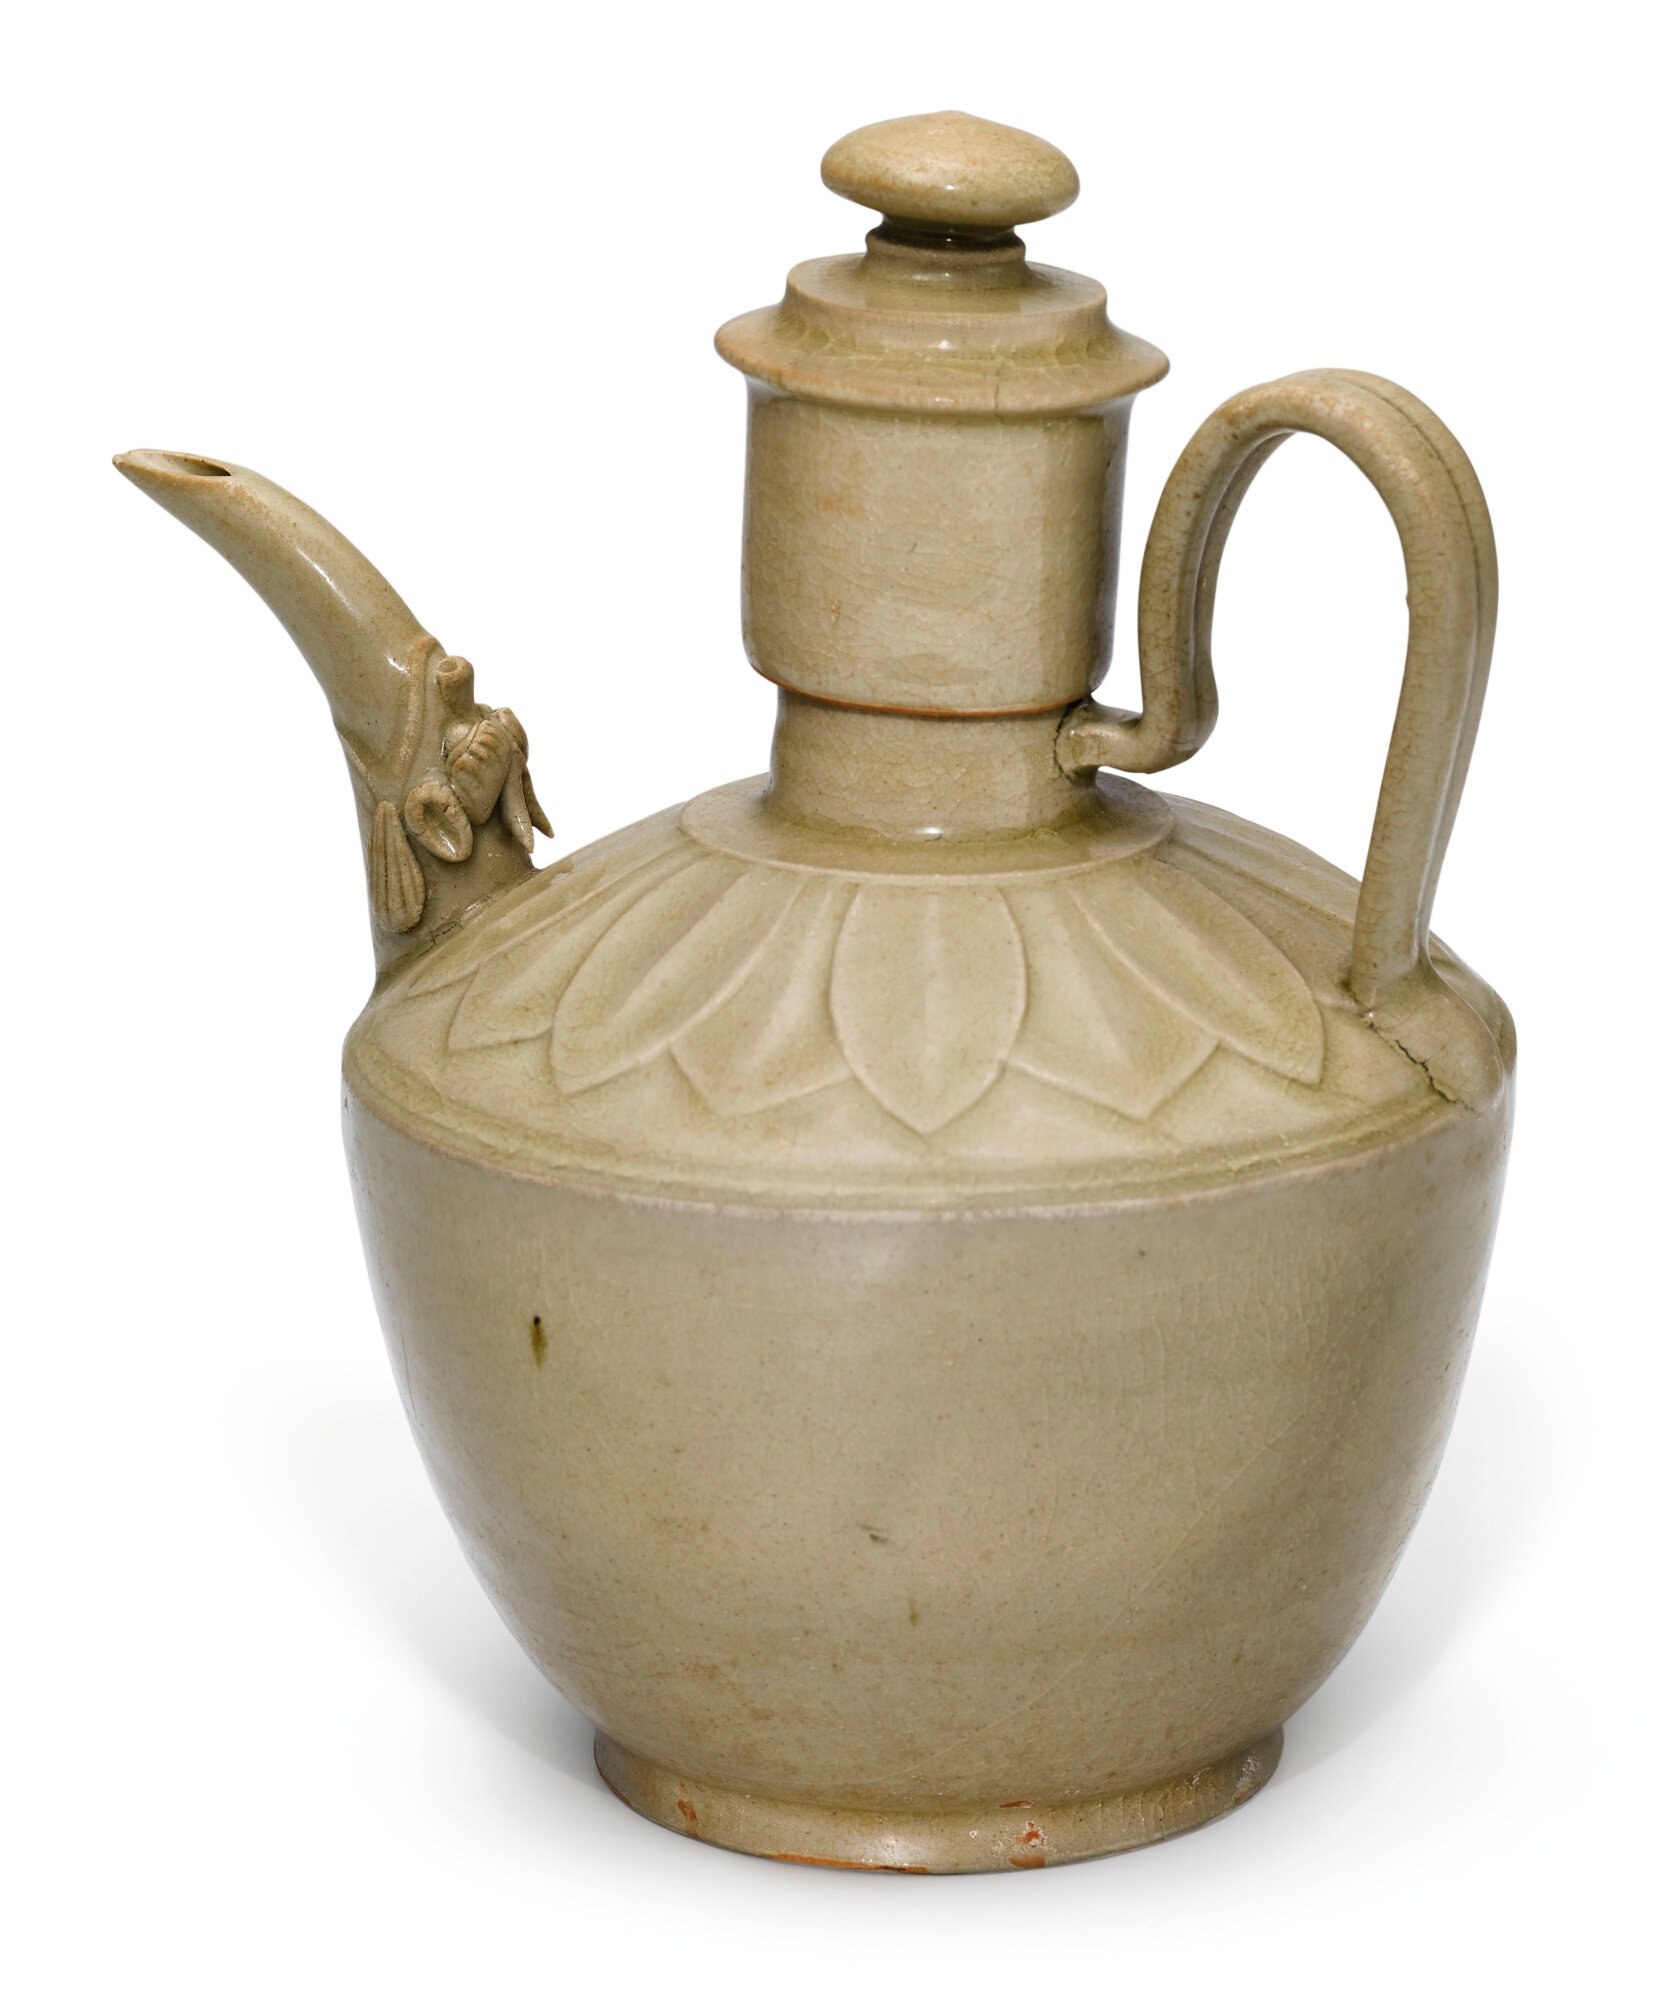 A Yue celadon ewer and cover, Five dynasties (907-960)